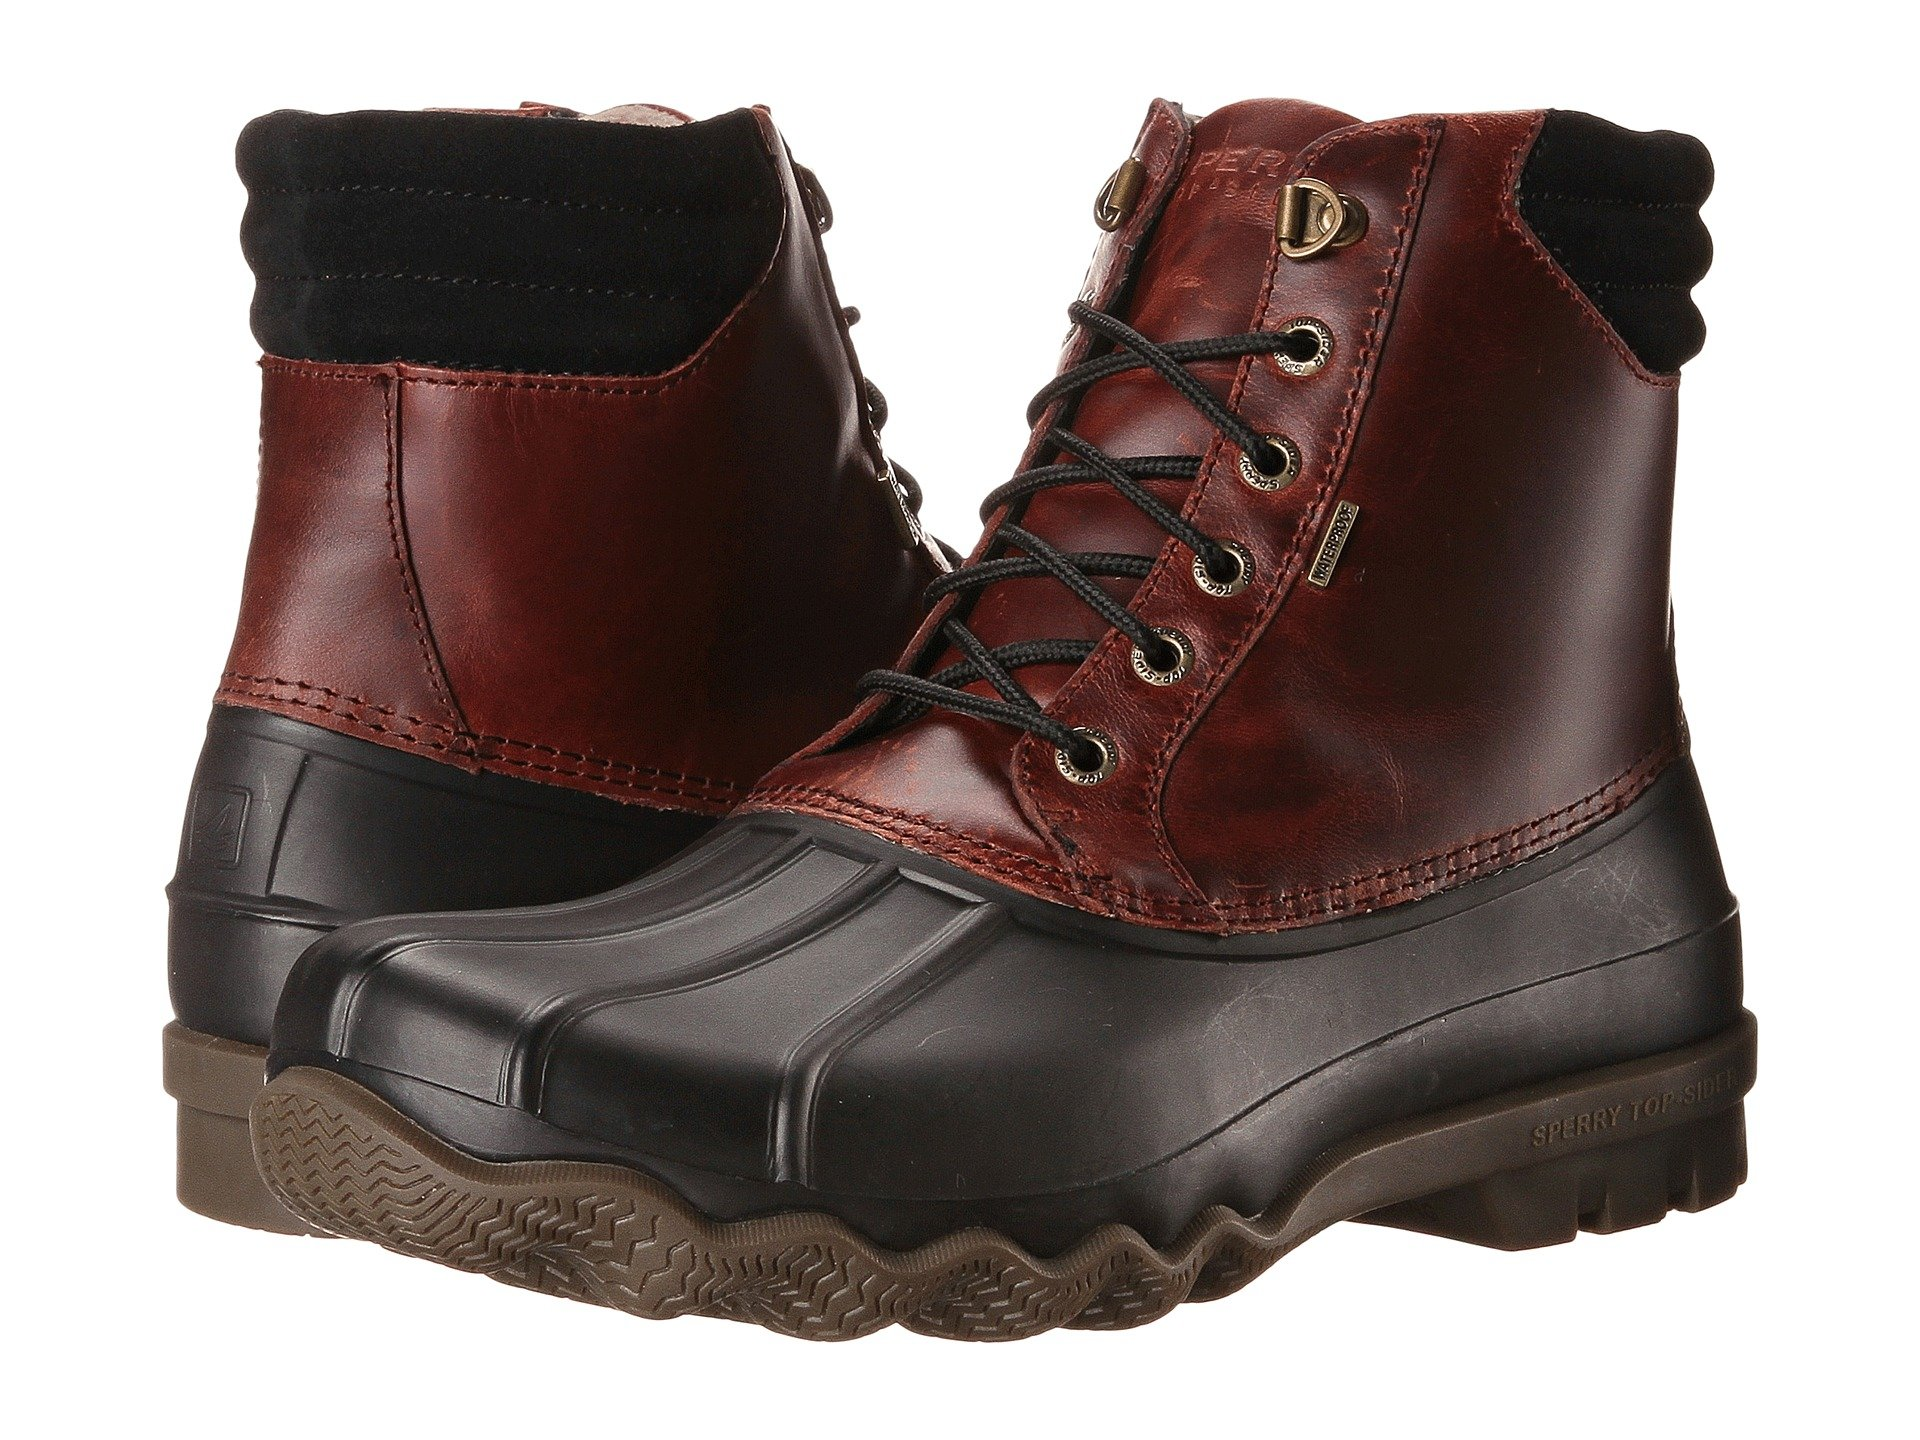 d6519af0fd0 Men's Winter and Snow Boots + FREE SHIPPING | Shoes | Zappos.com